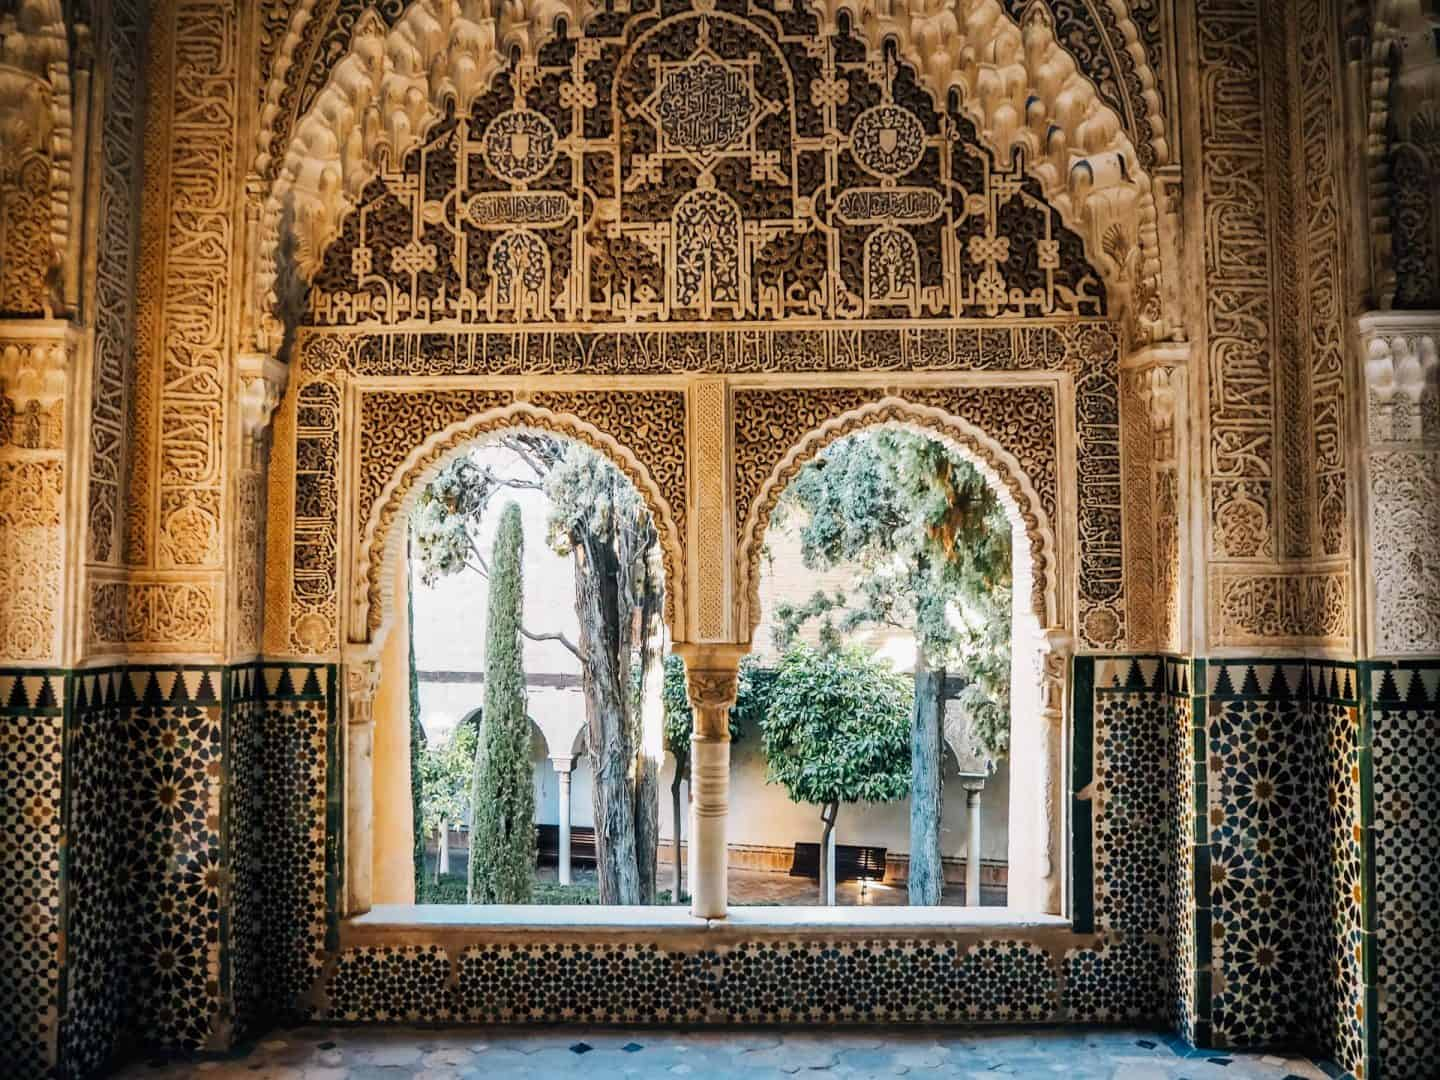 Alhambra interior with view